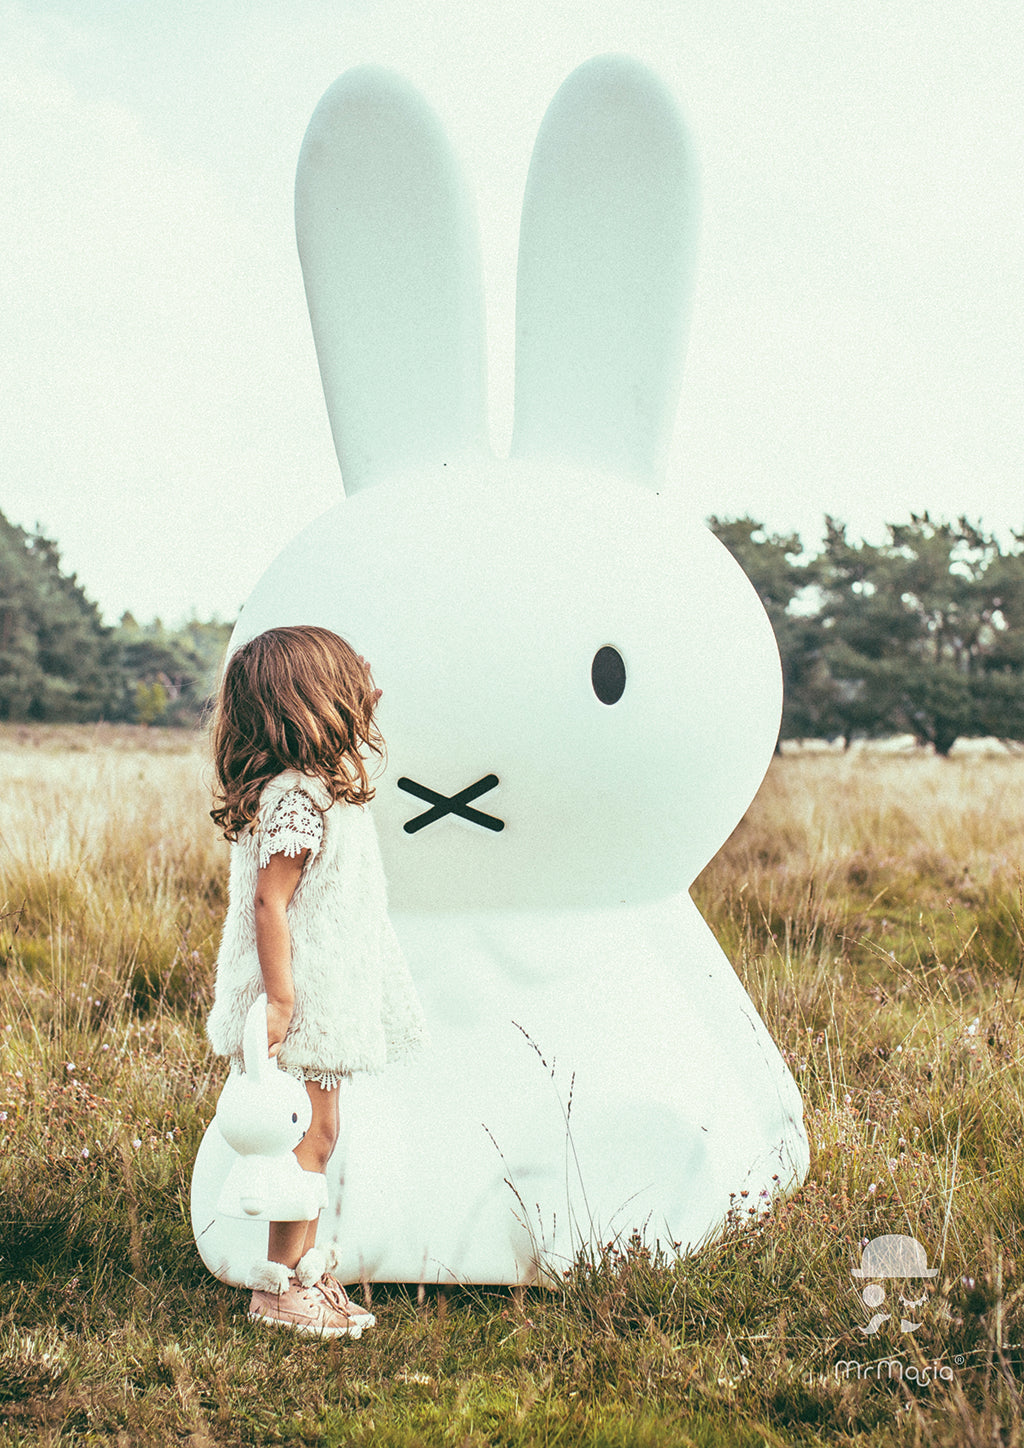 Buy Mr Maria Miffy First Light Lamp Is To Me